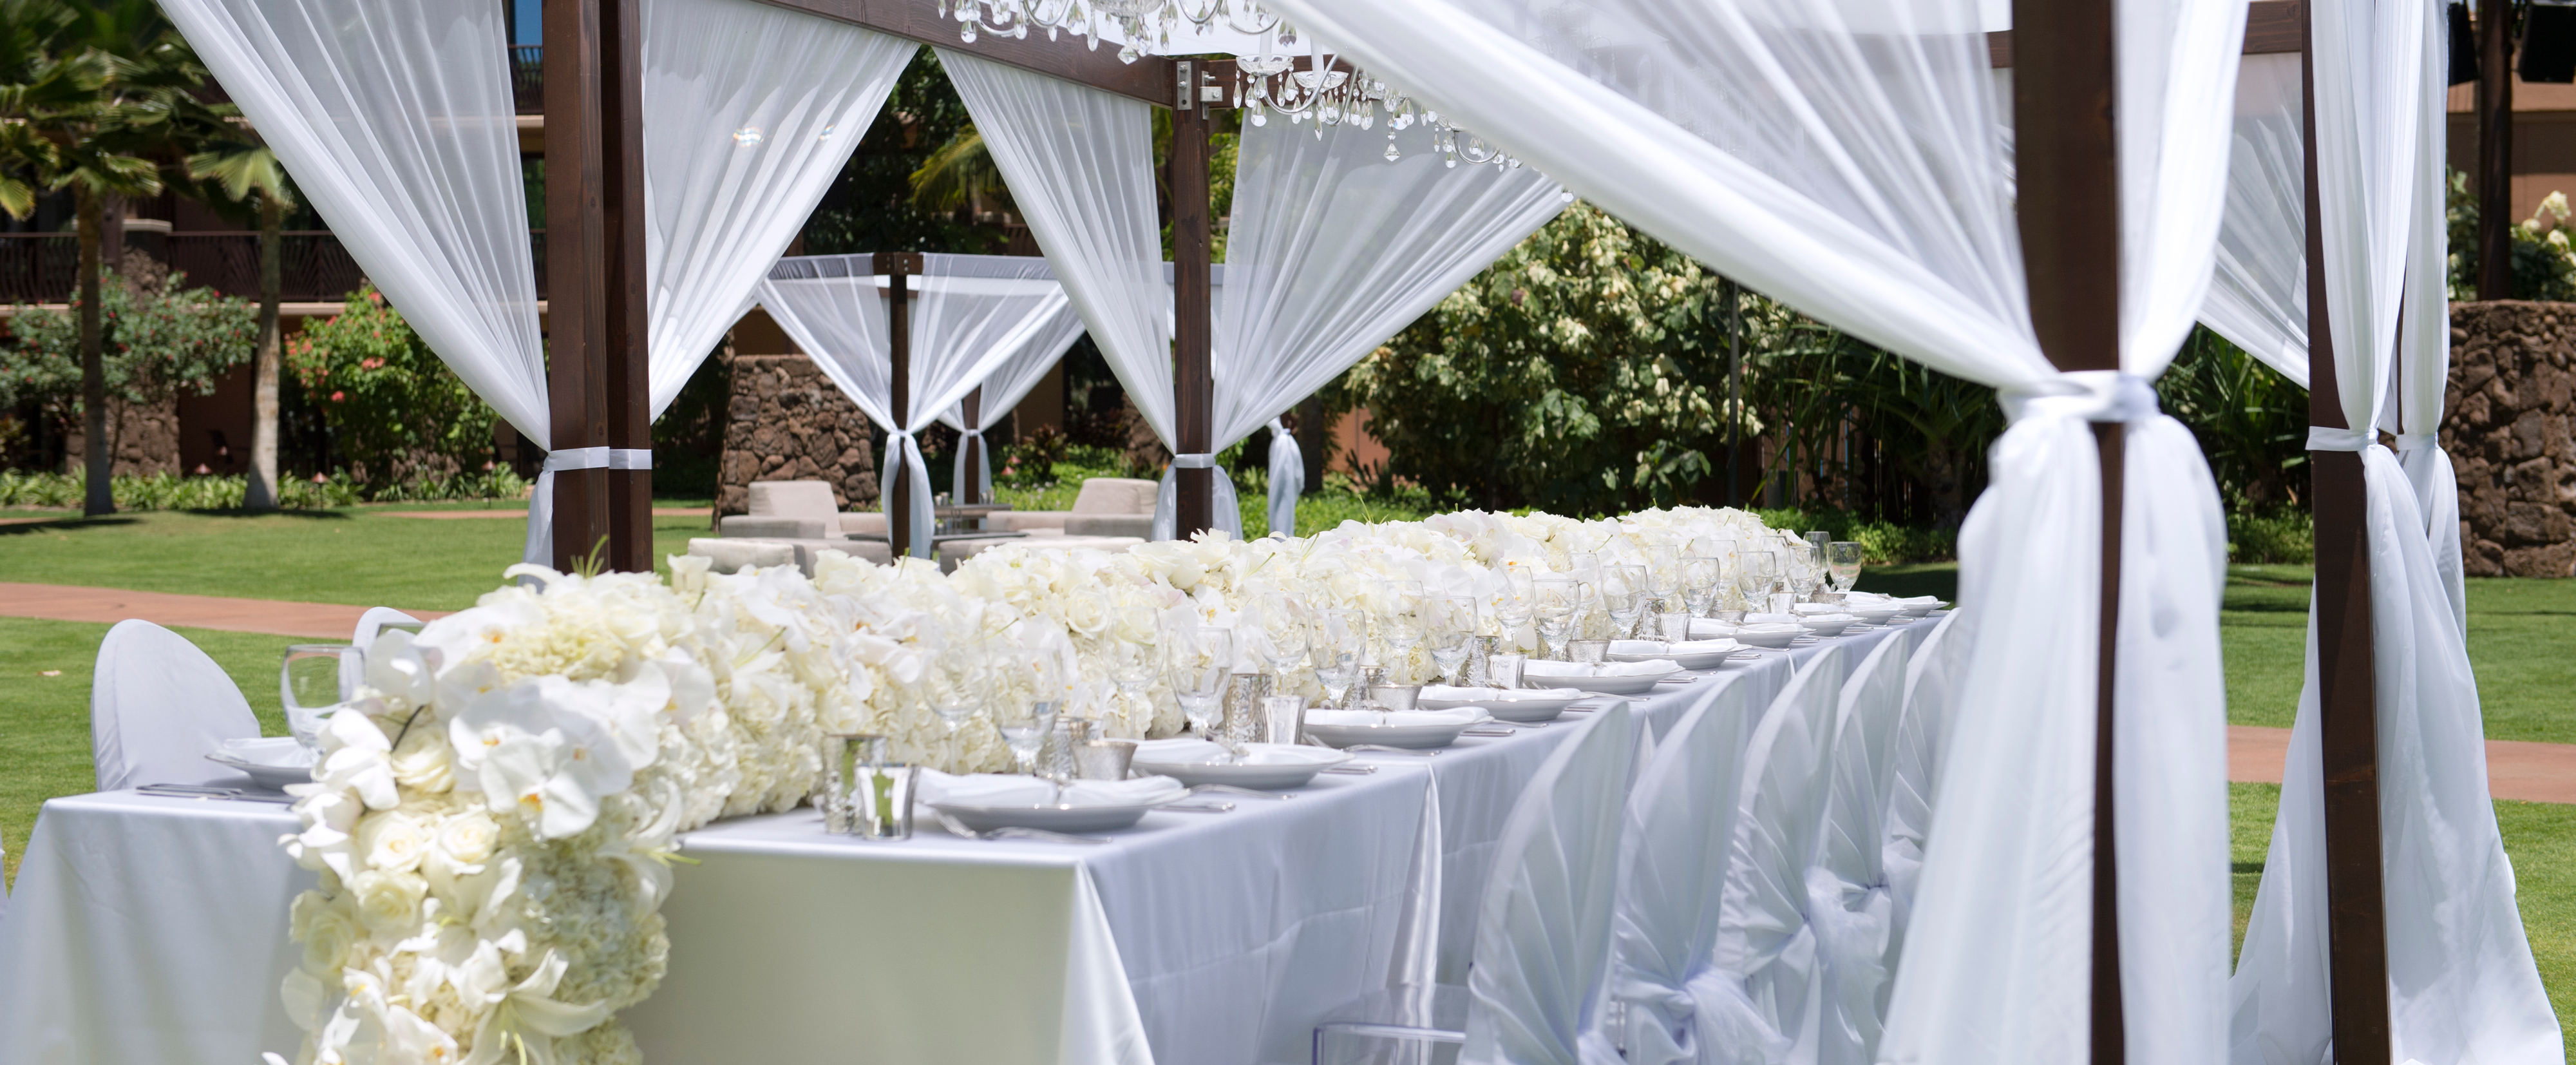 A Wedding Party Banquet Table Decorated With Garland Of White Roses And Orchids Under